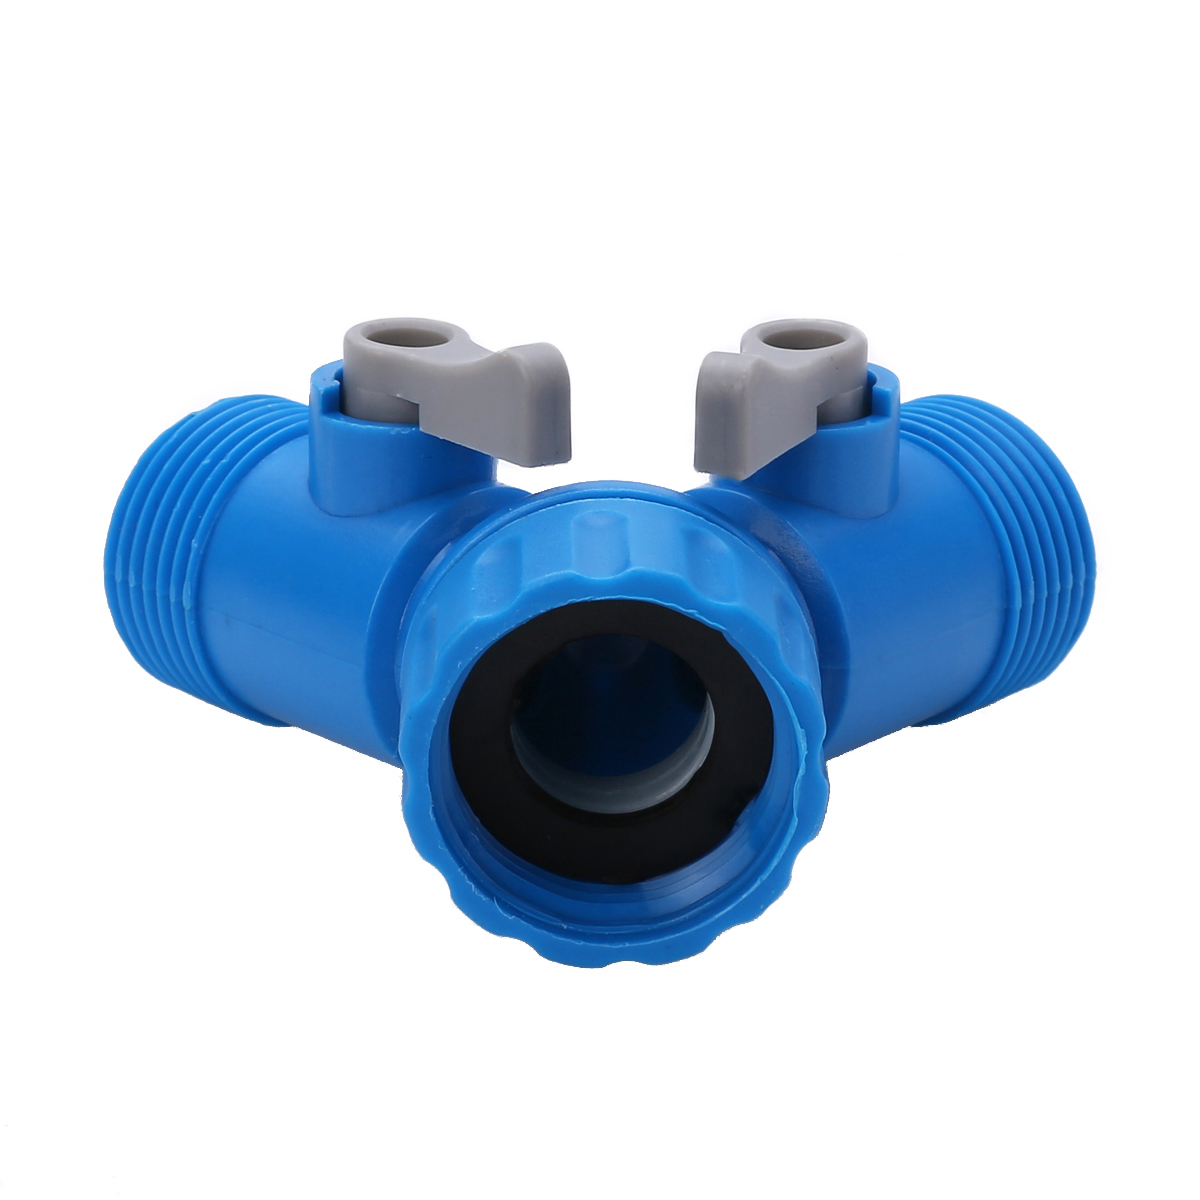 1pcs 3/4 Inch Garden Hoses Pipes Spliters 2 Way Connector Tap Y Type Adaptor Thread Tap Watering Tools Mayitr